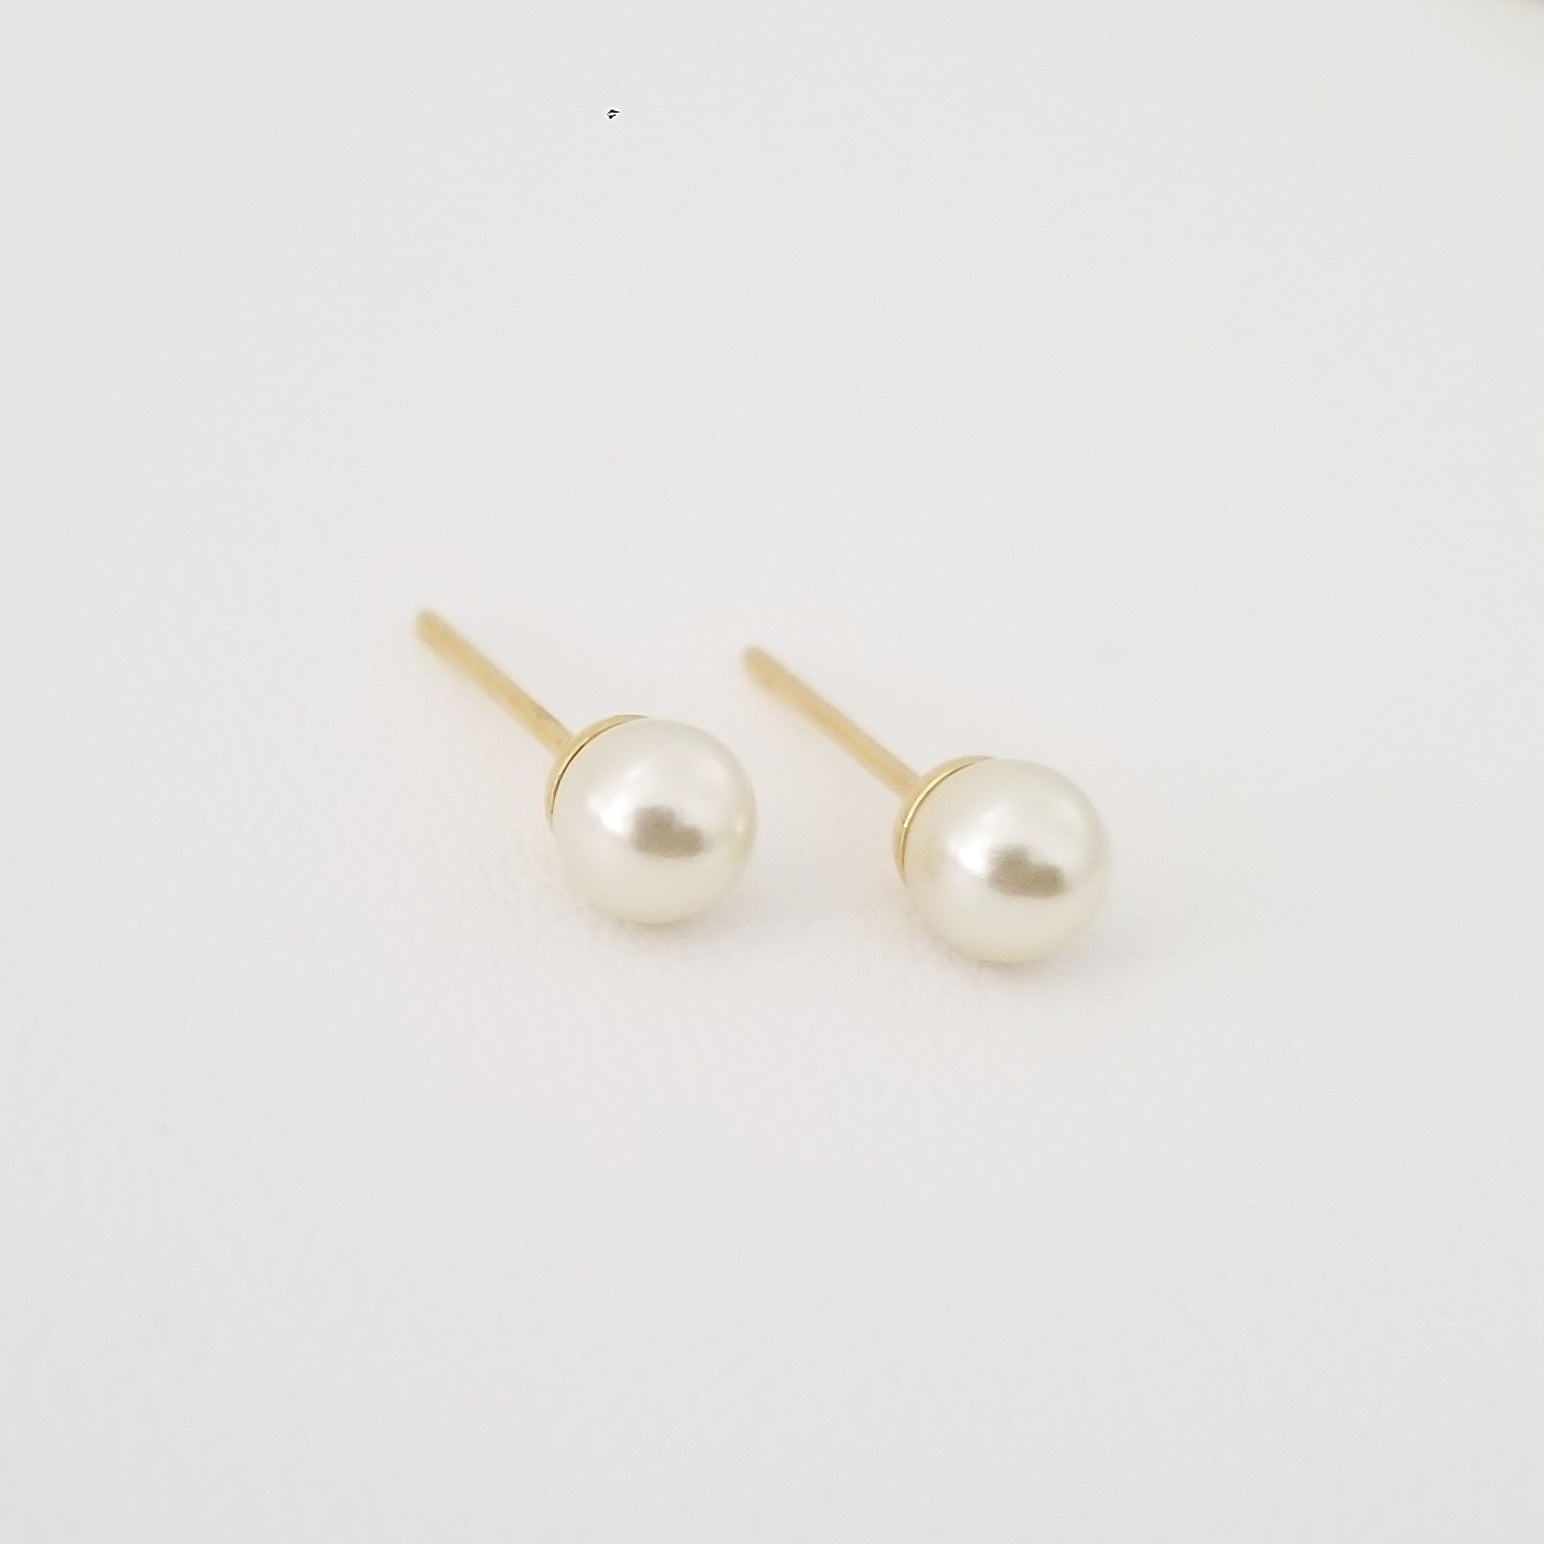 Pearl + Gold Earrings Mini-size